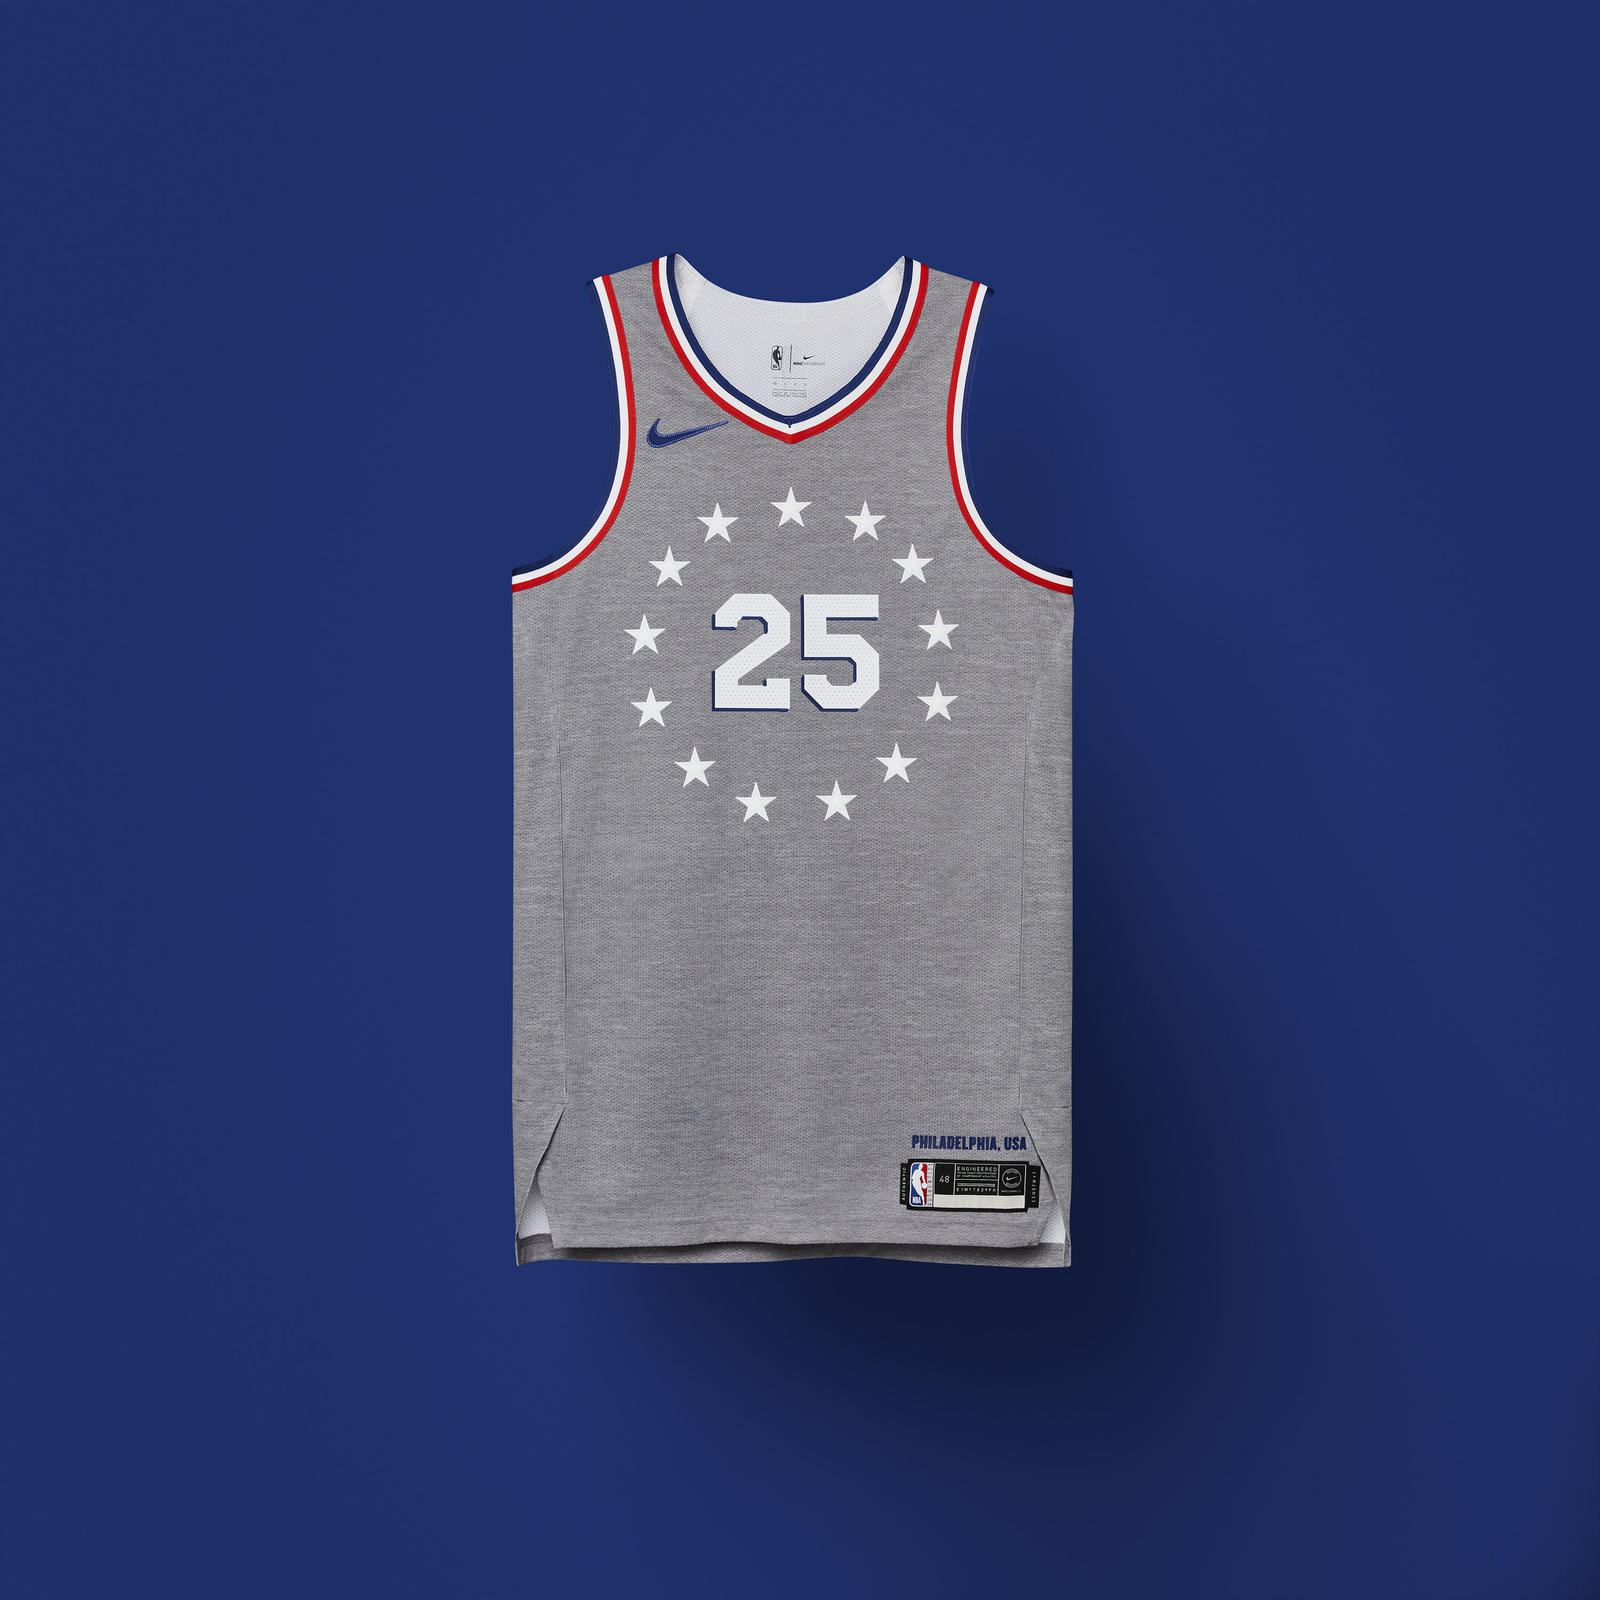 330651de72e NBA City Edition Uniforms 2018-19 - Nike News